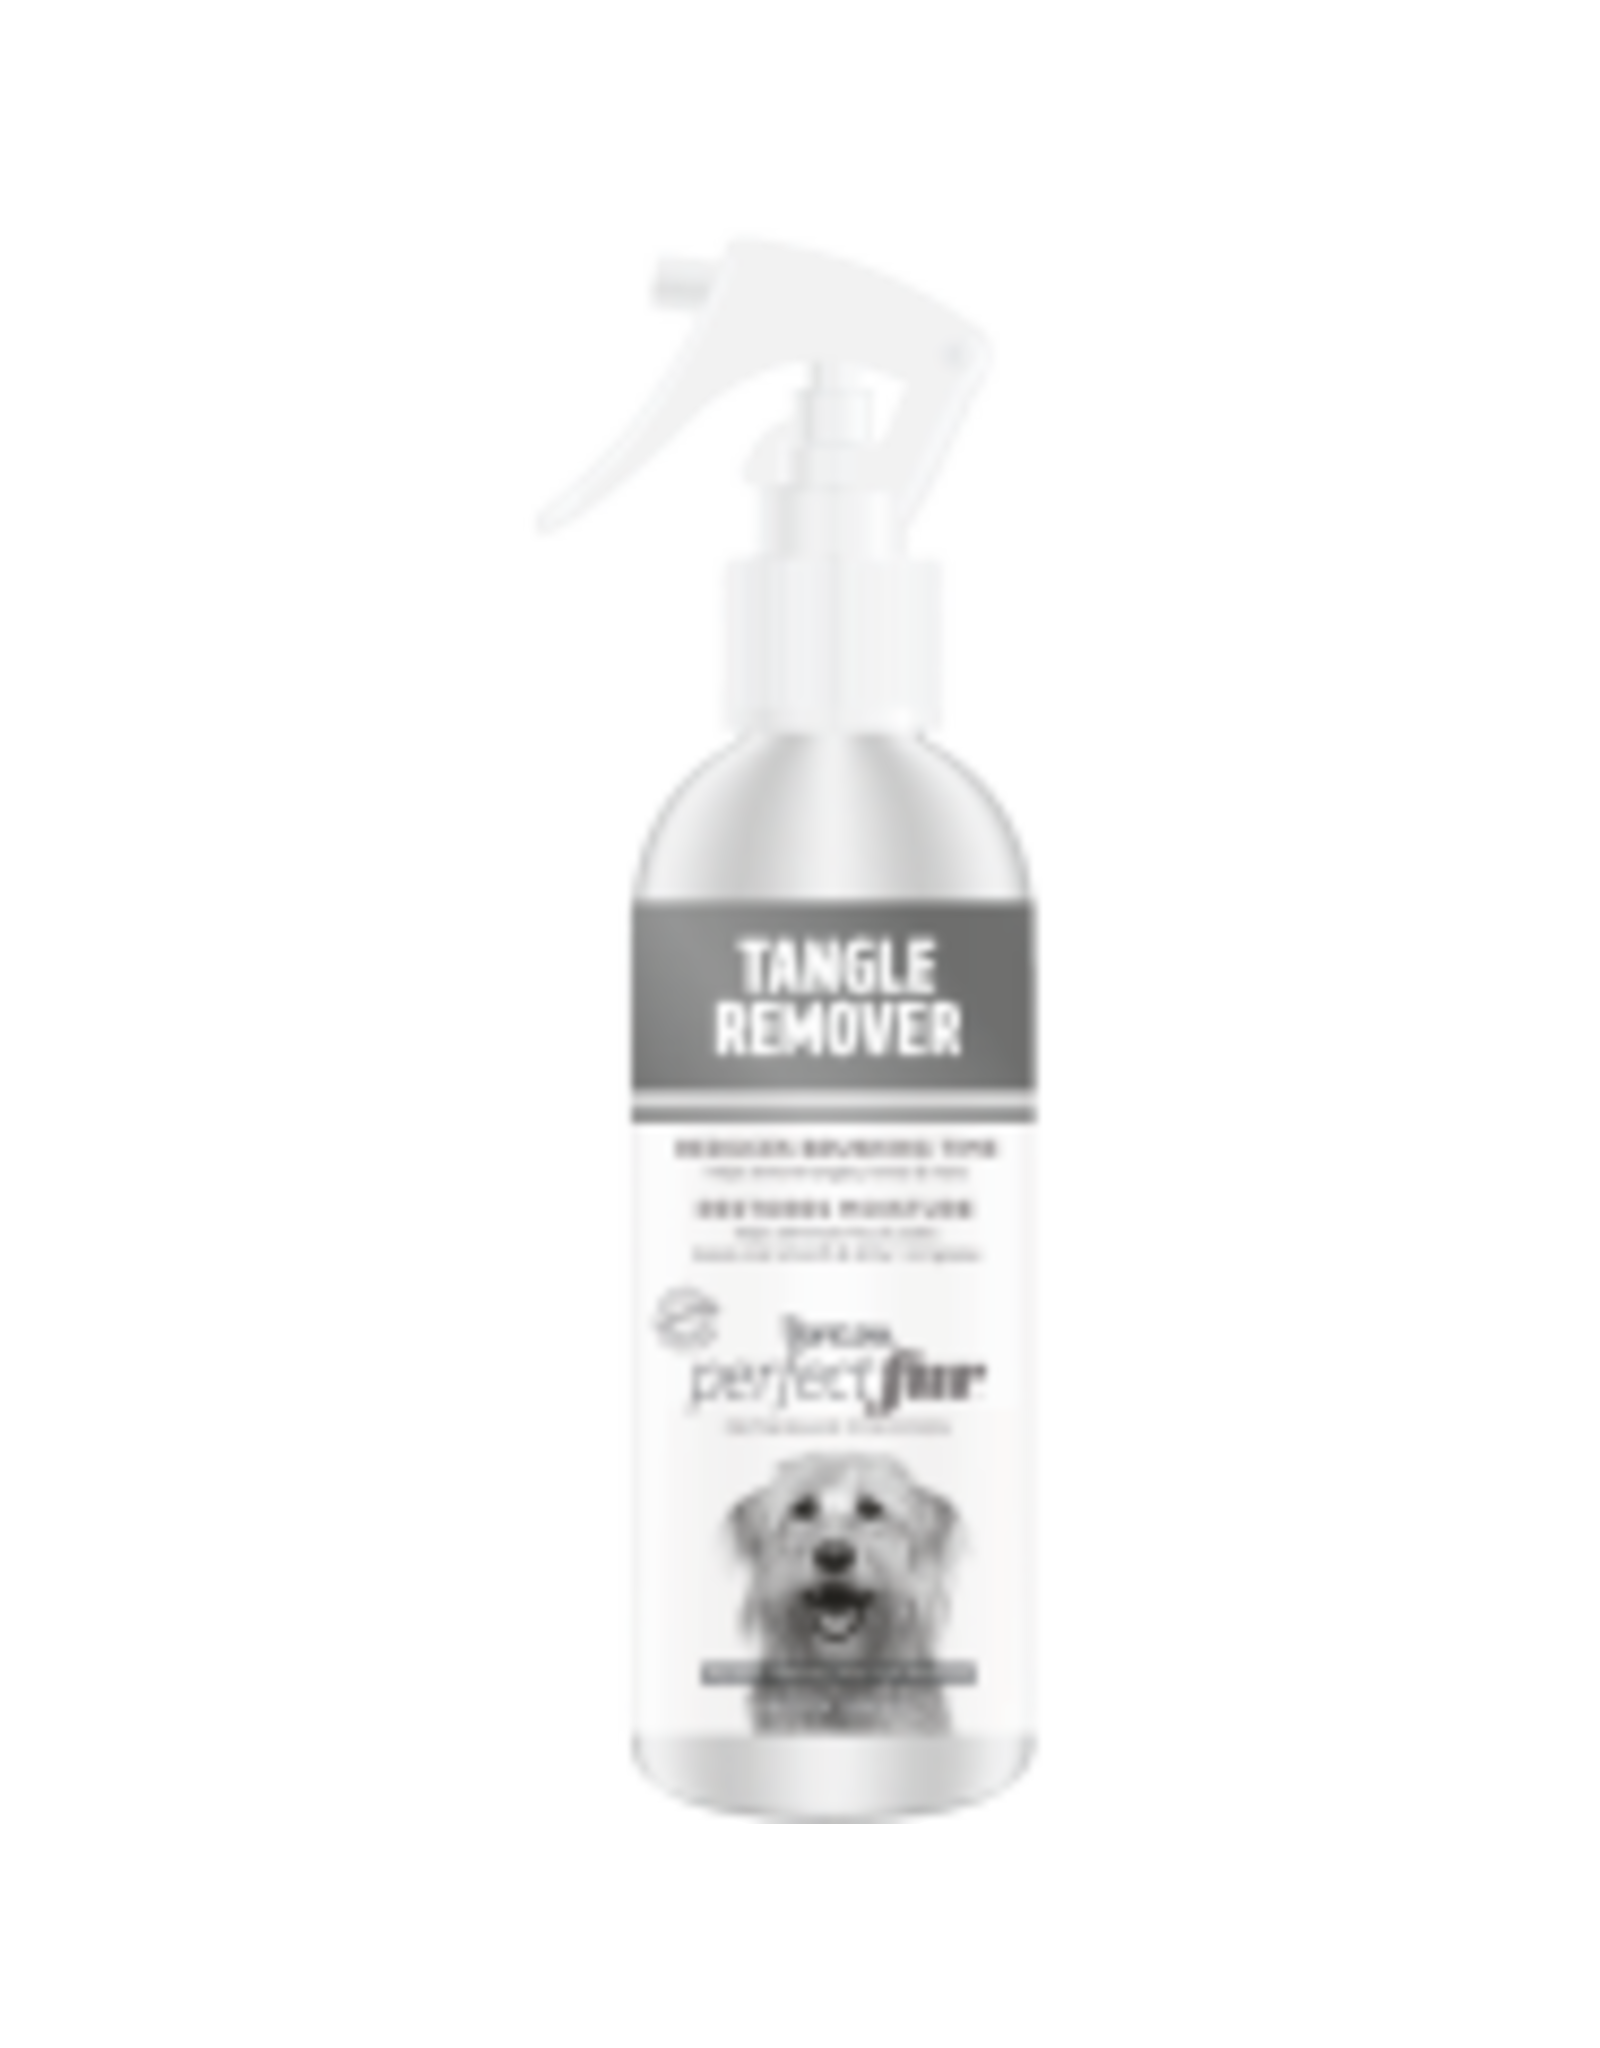 Tropiclean TropiClean - Perfect Fur Tangle Remover Spray 8oz